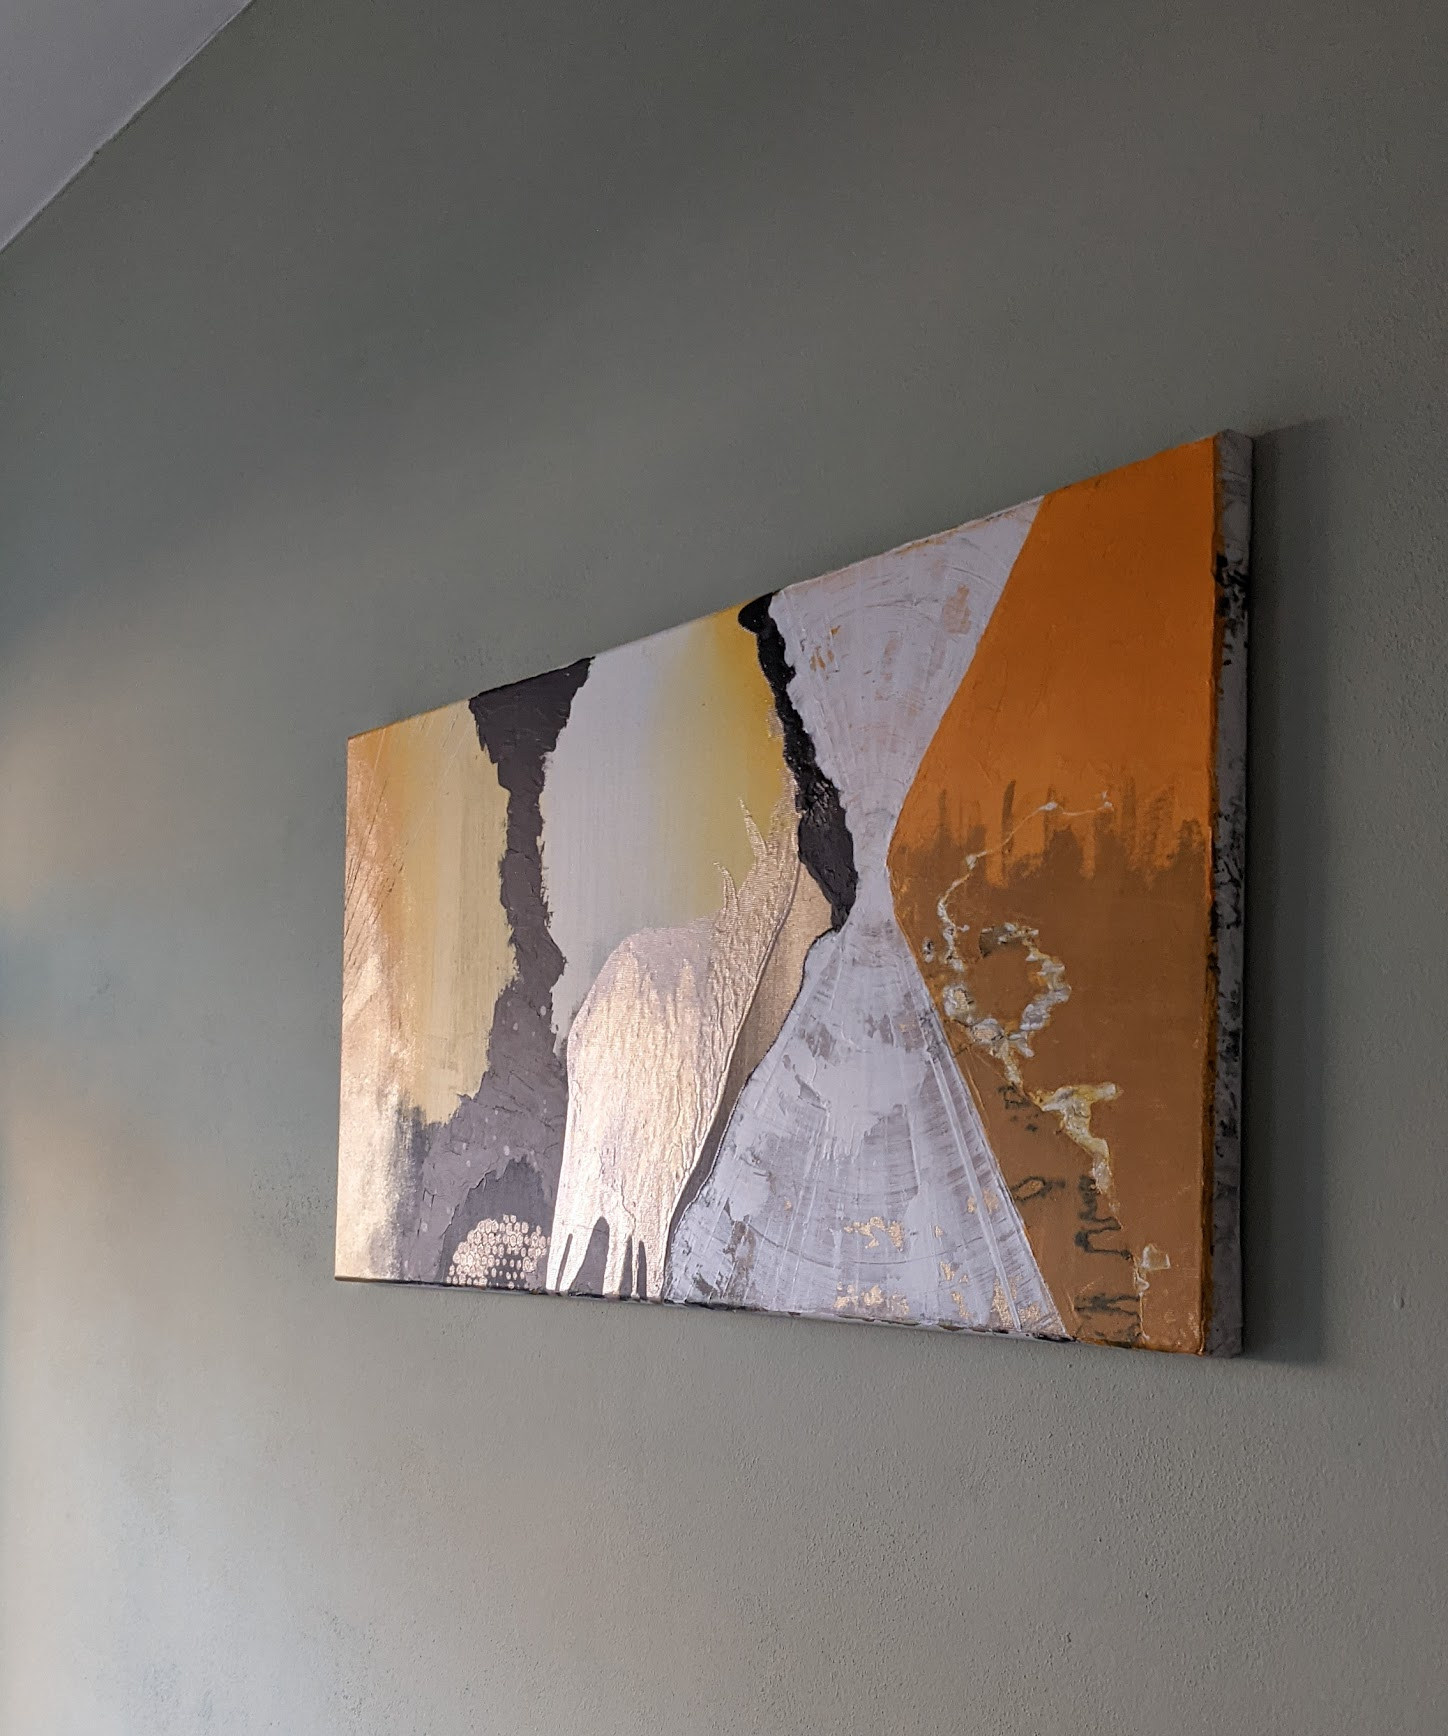 acrylic on canvas, 40 x 80cm, by Michal Cáb